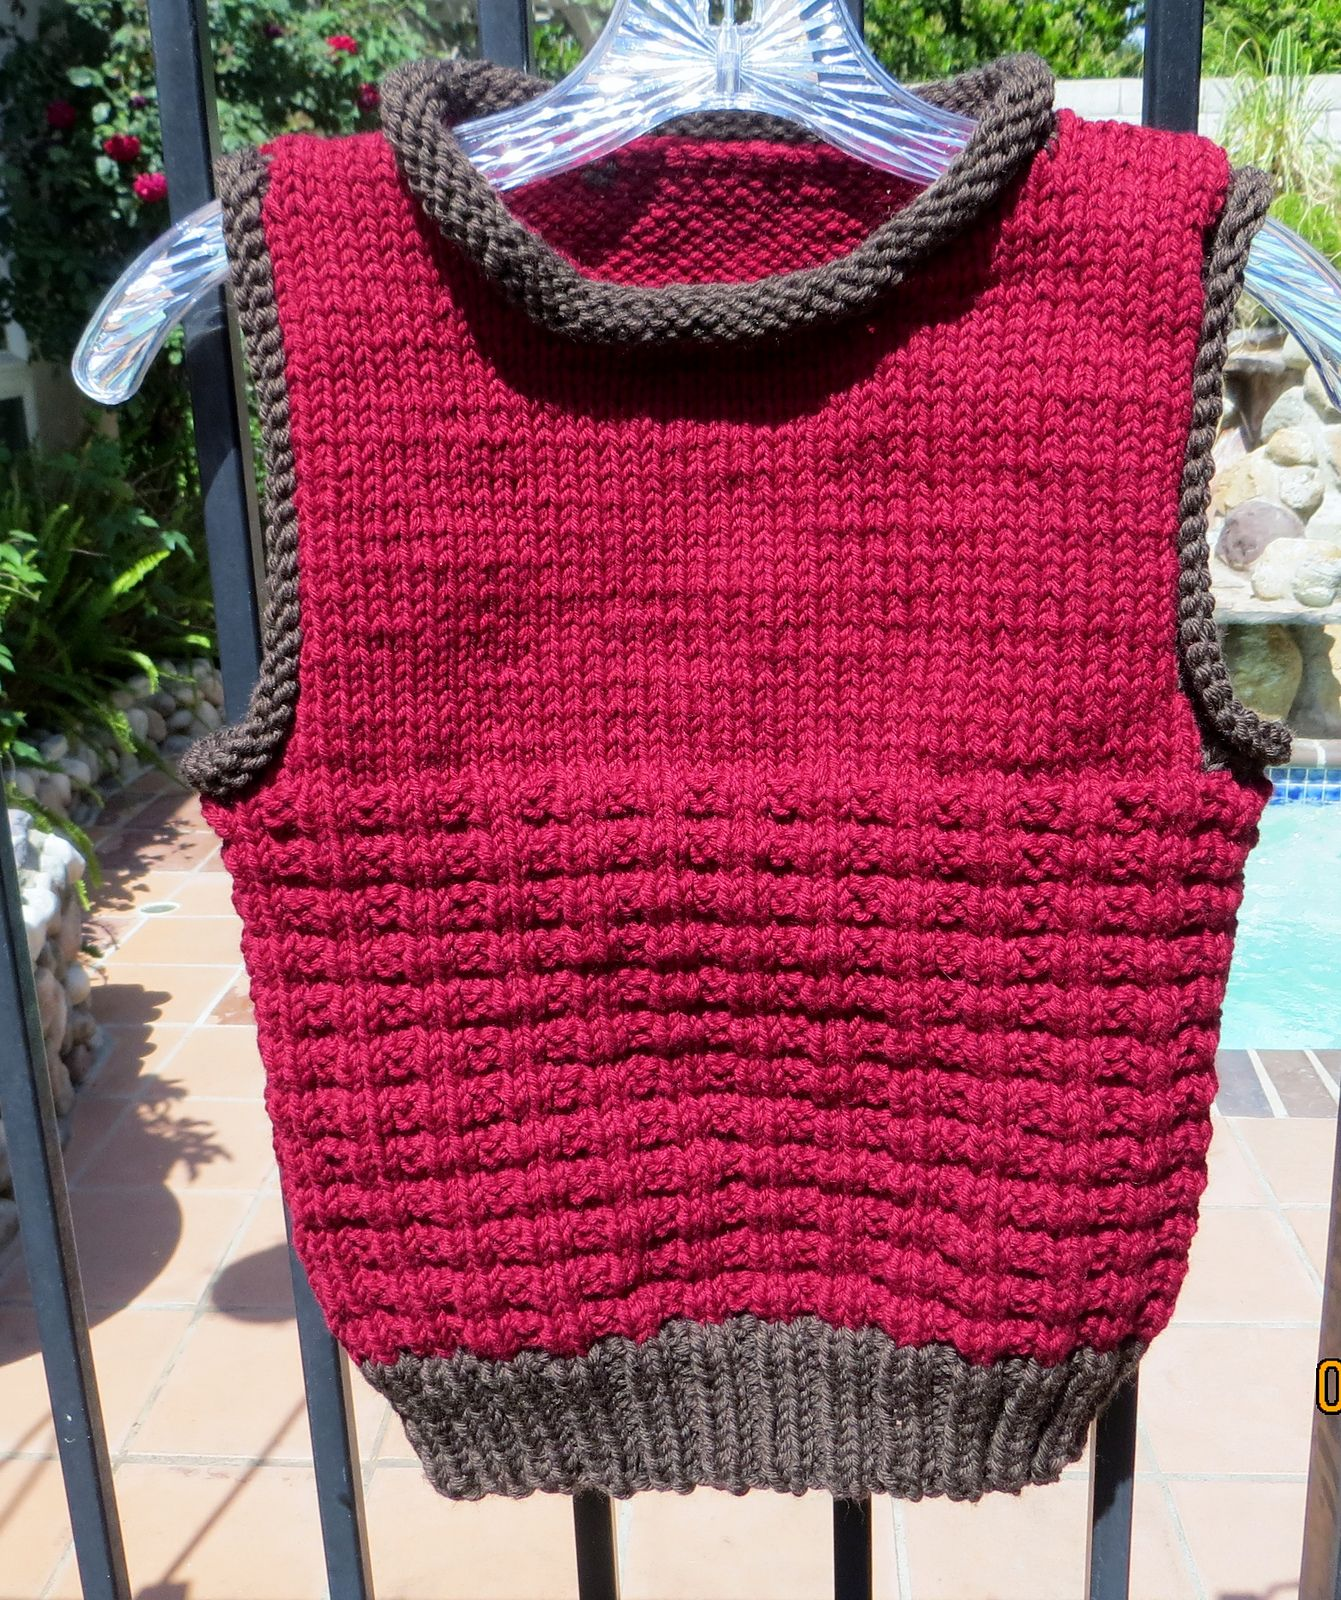 Ravelry: Heart Warming Vest by Betsy Teitler | Free baby ...